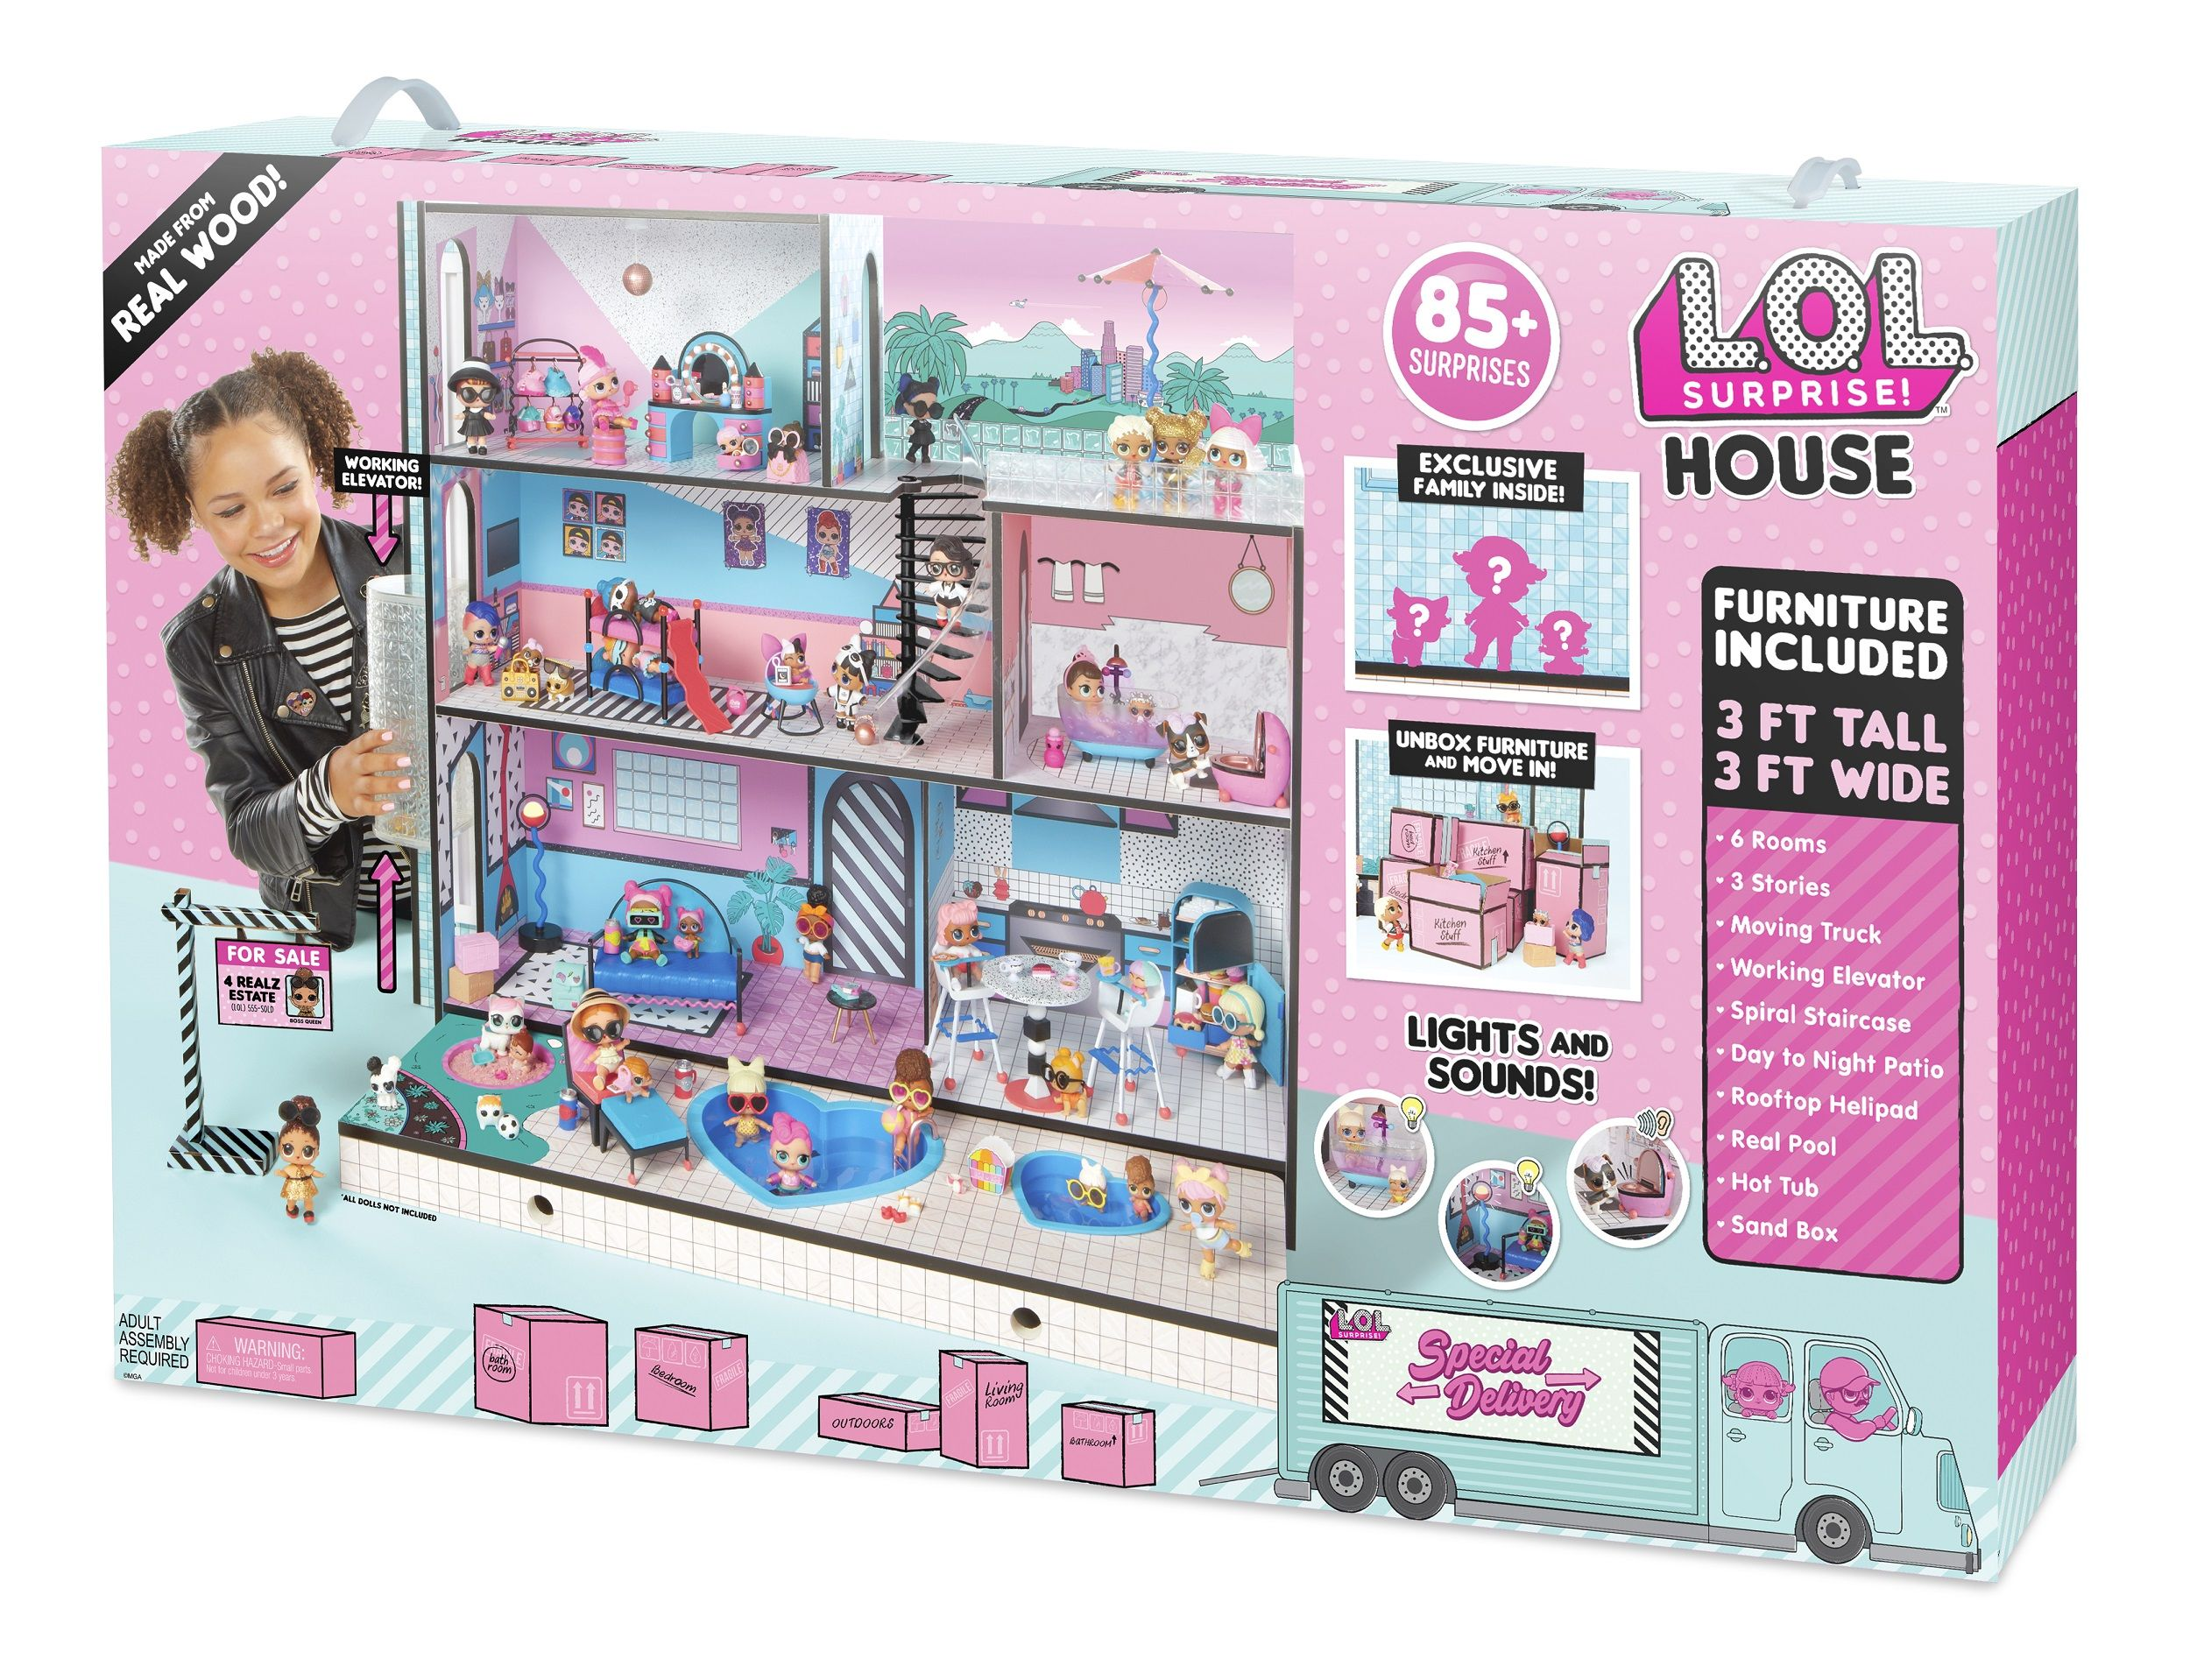 L O L Surprise House With 85 Surprises And Made Of Real Wood Walmart Com Lol Dolls Dollhouse Kits Doll House